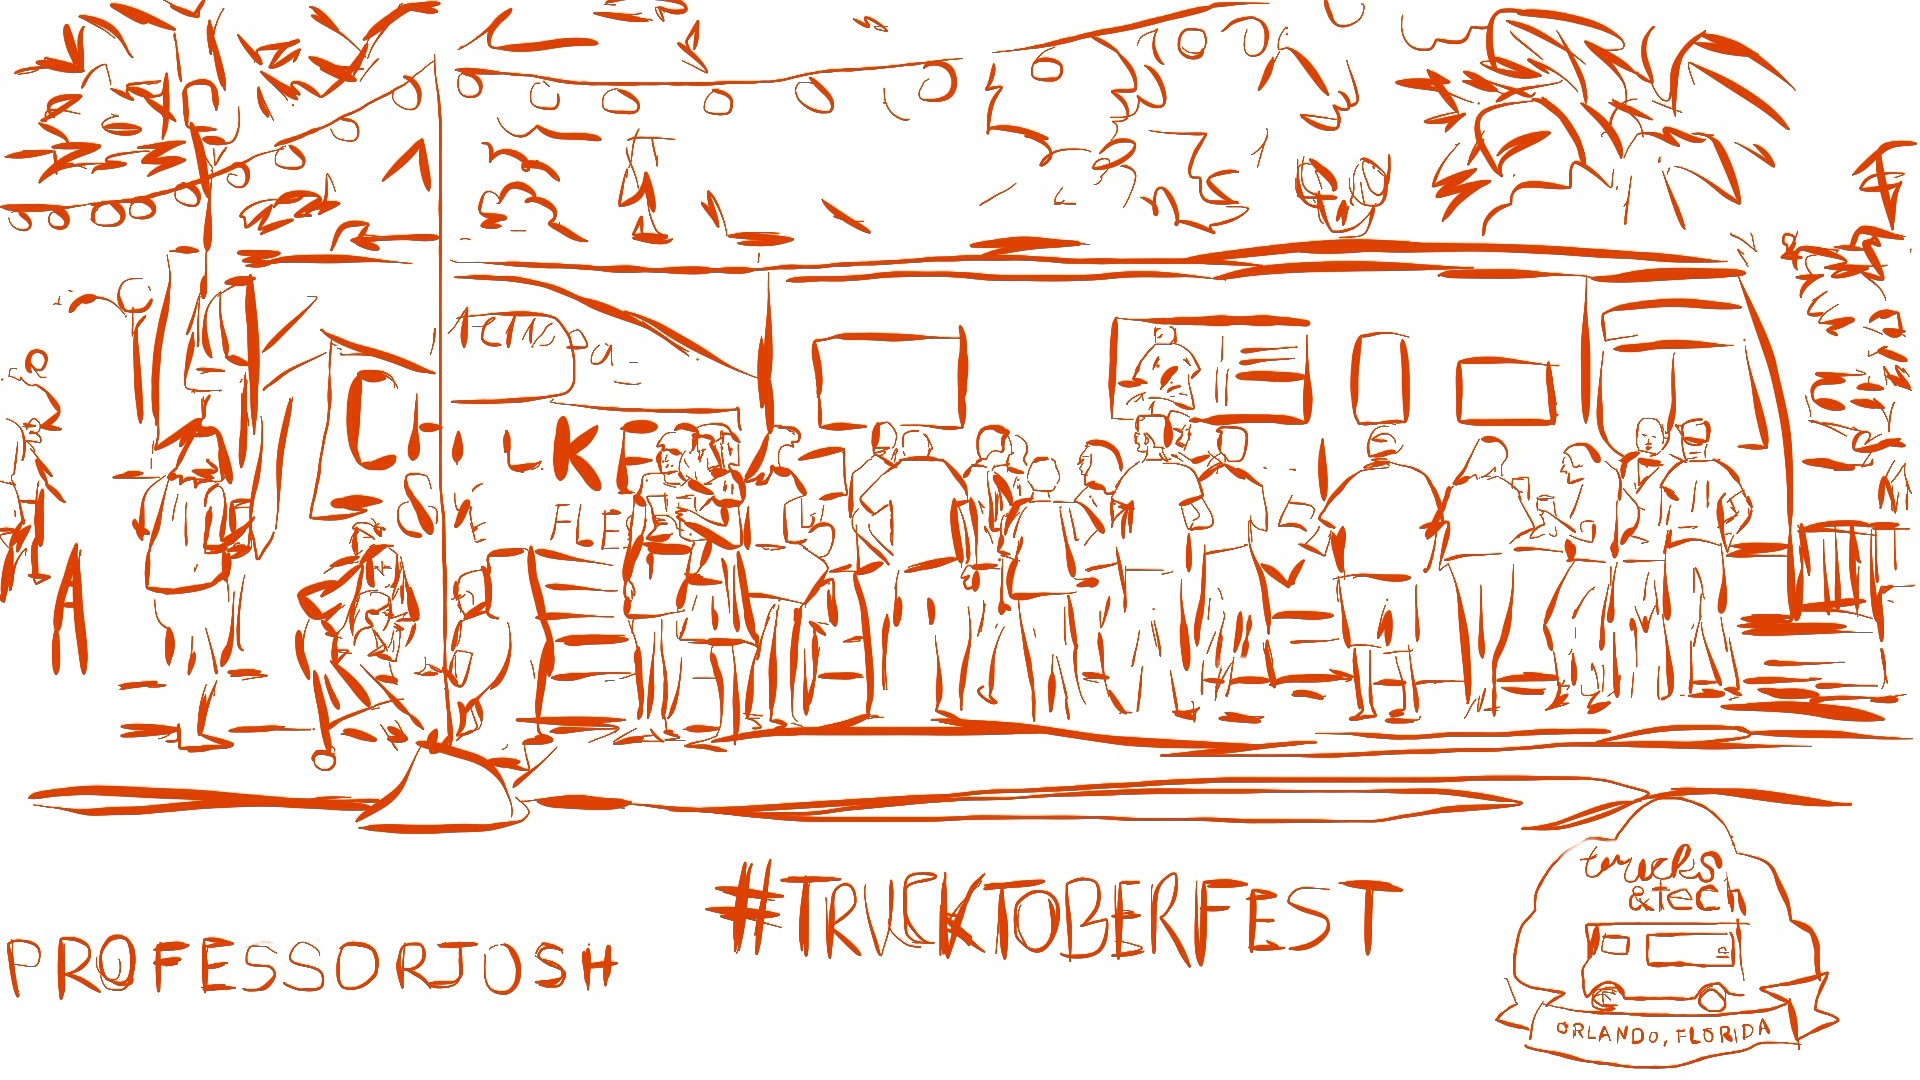 Trucks and Tech II #Trucktoberfest Sketch and Photos